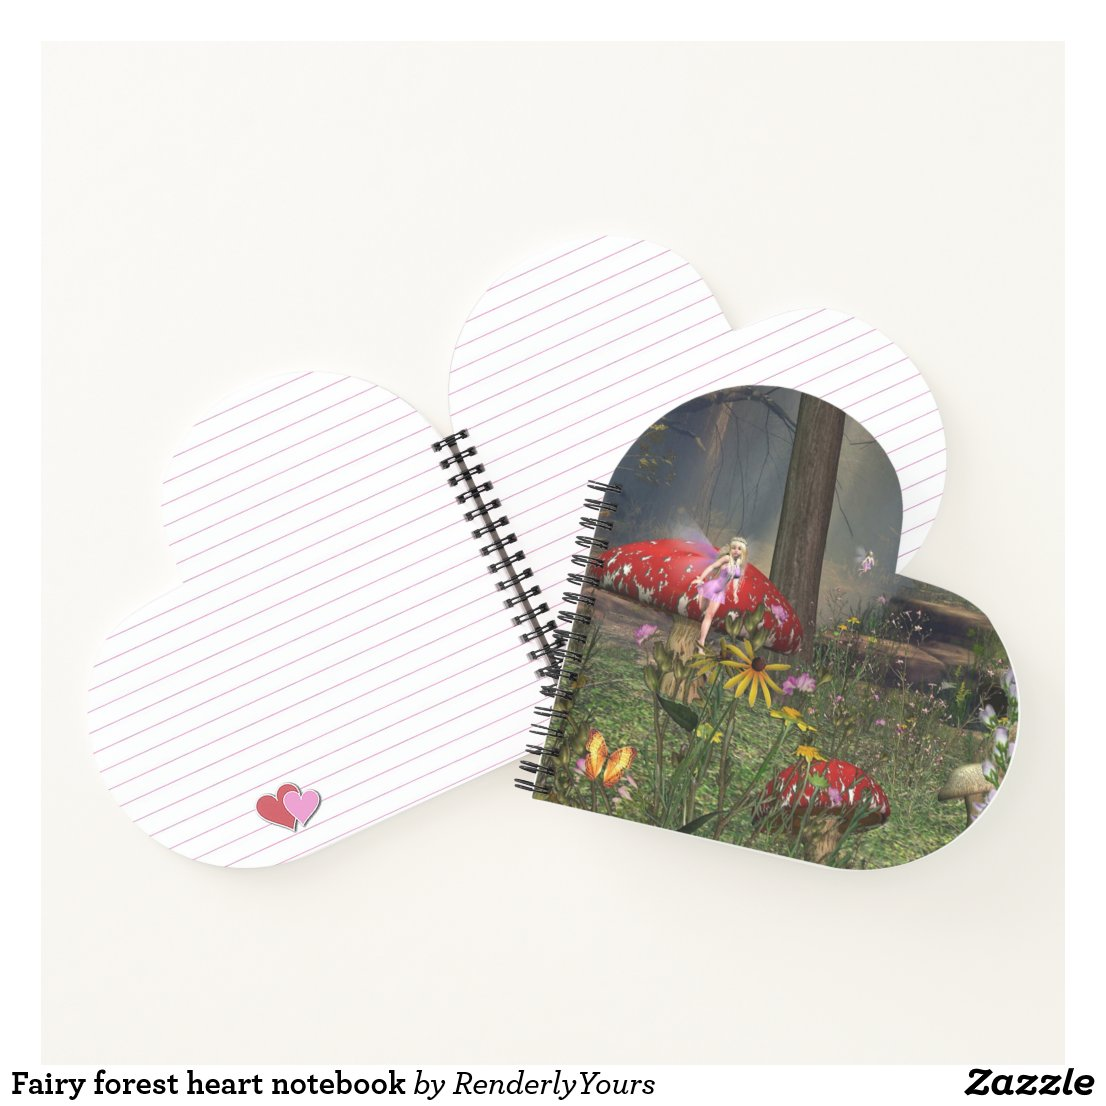 Fairy forest heart notebook